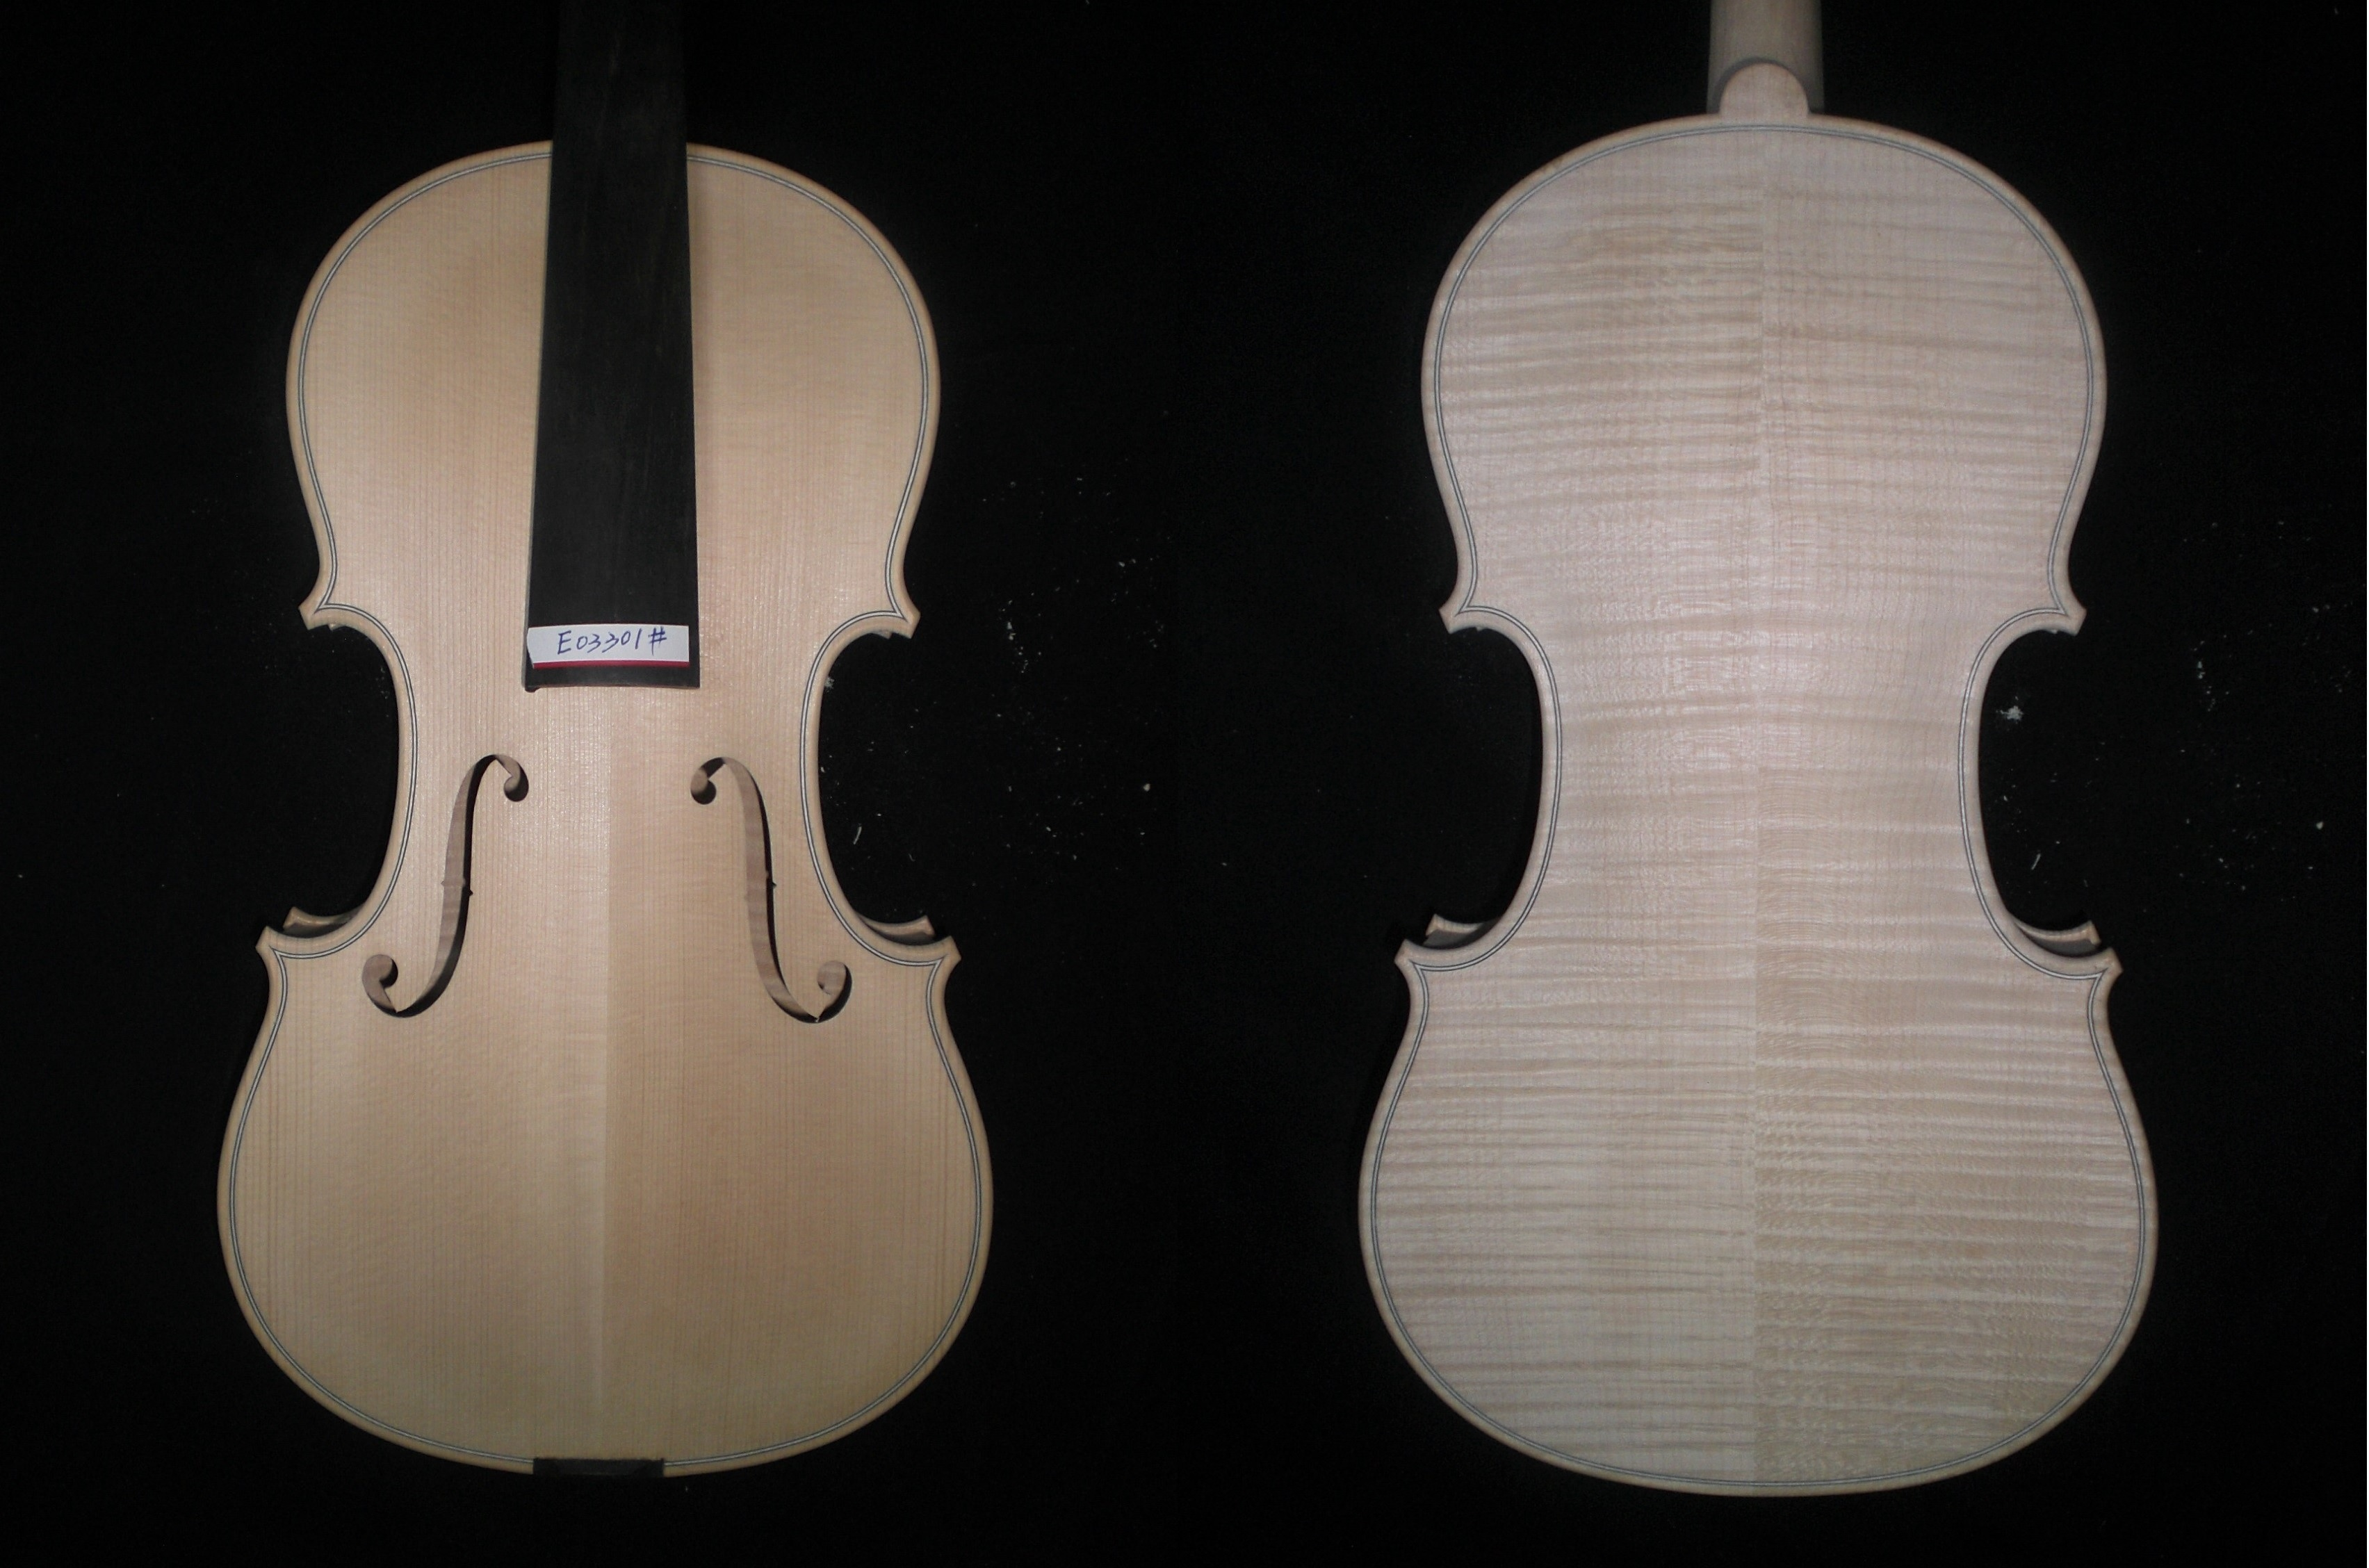 1 PC Quality Violin 4/4 Unfinished with Spruce Top Maple Back and Side Ebony Fingerboard European Wood 2 pcs new 4 4 unfinished violin flame maple back russian spruce top